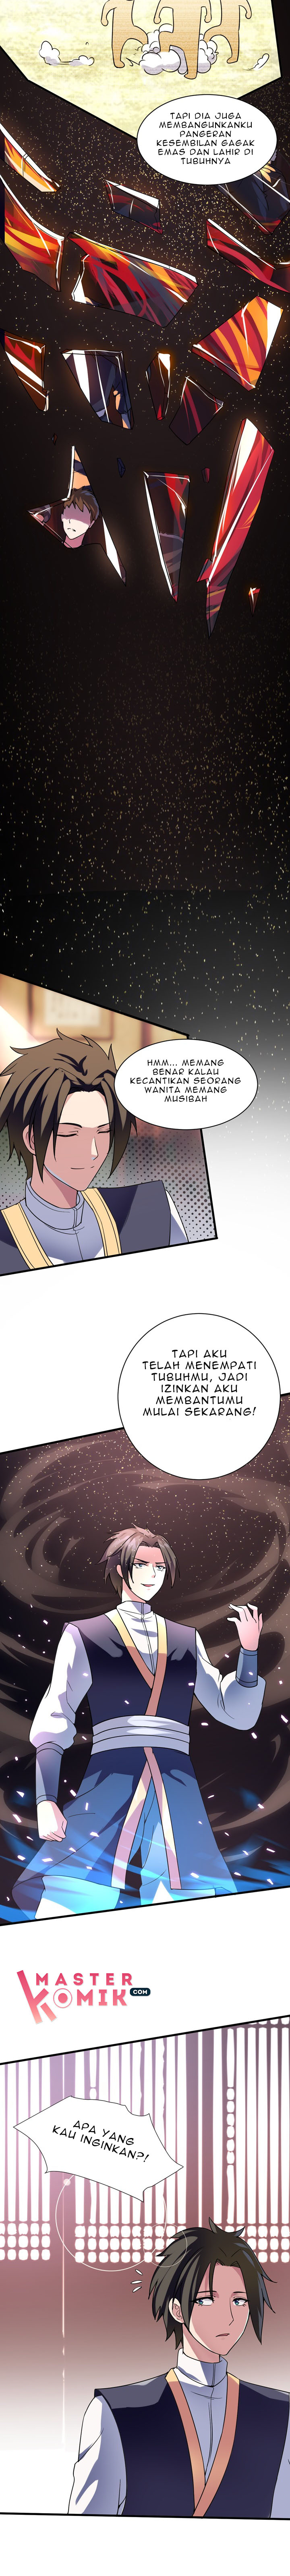 Spoiler Manhua Chaos Golden Crow 3